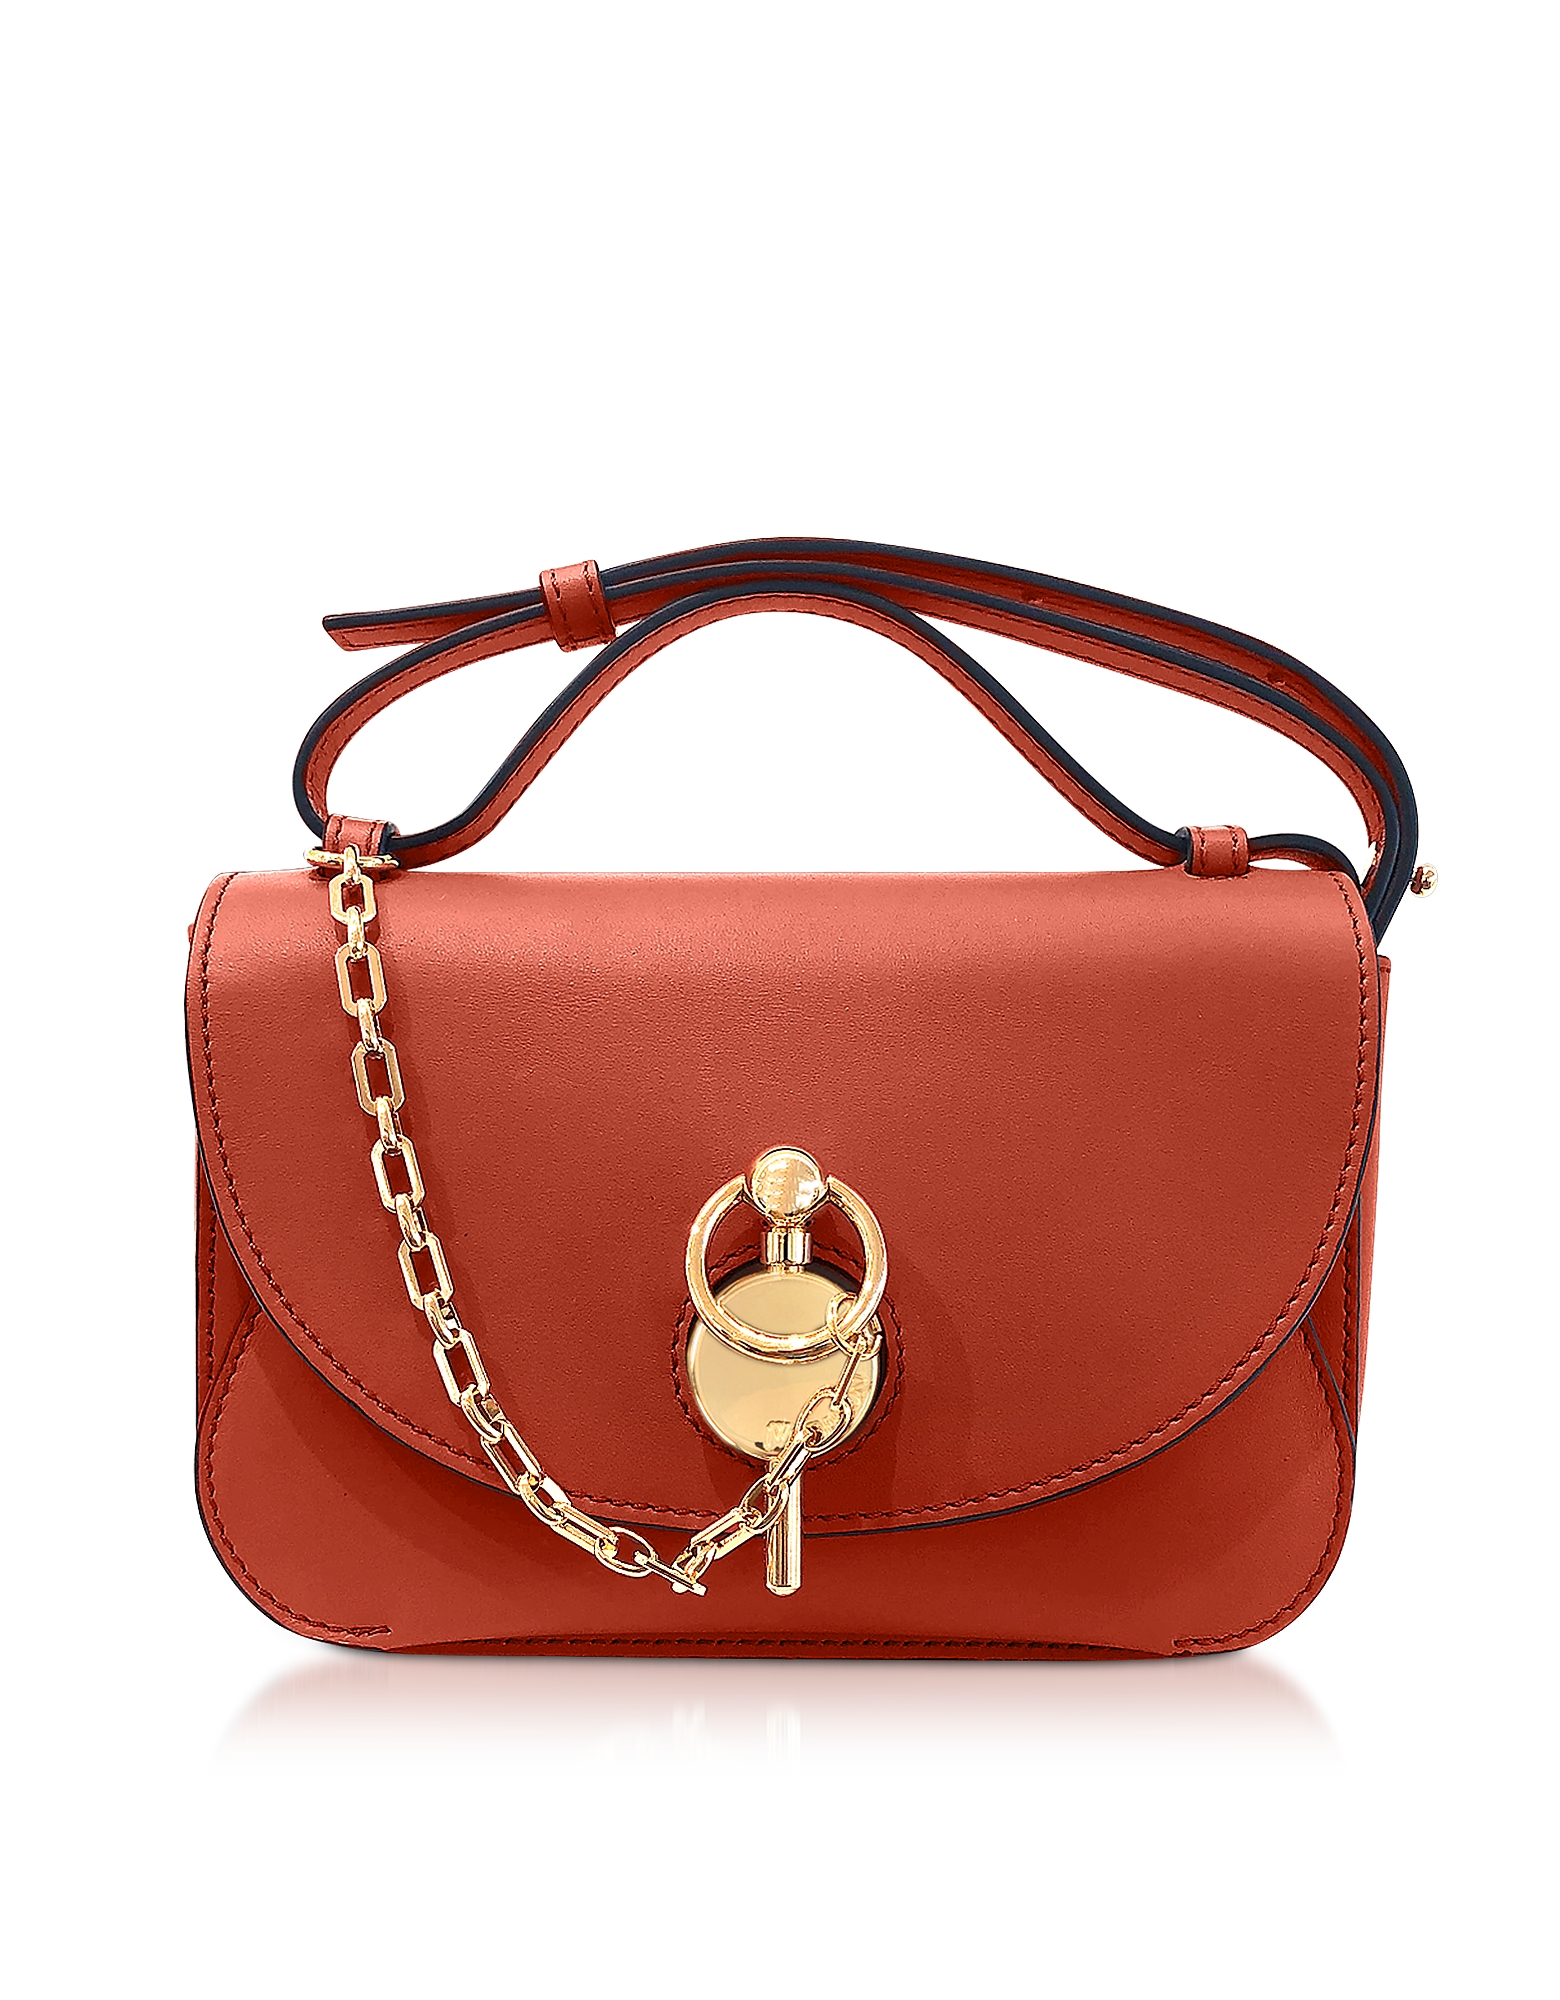 JW Anderson Designer Handbags, Ginger Midi Keyts Crossbody Bag